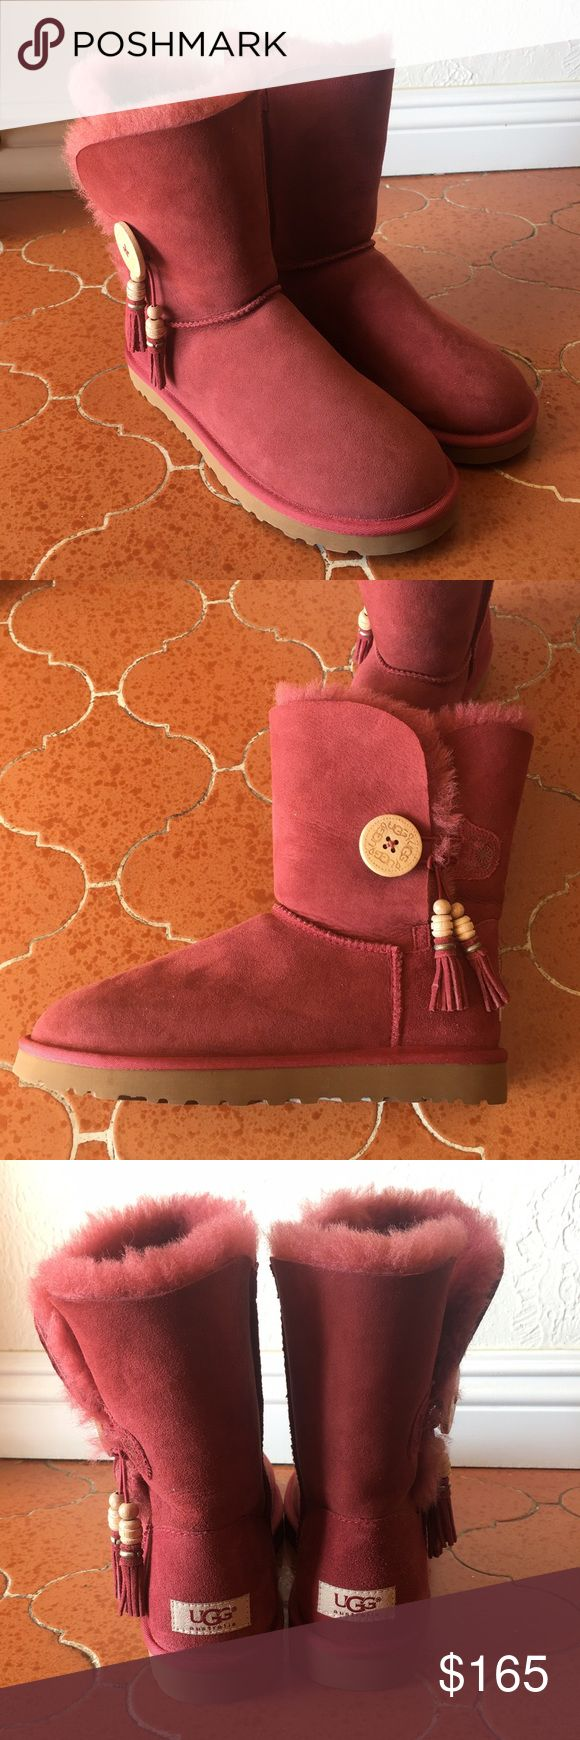 UGG Bailey Button Boot Designed for amazing comfort with every step, brand new, never worn, no box. UGG Shoes Winter & Rain Boots